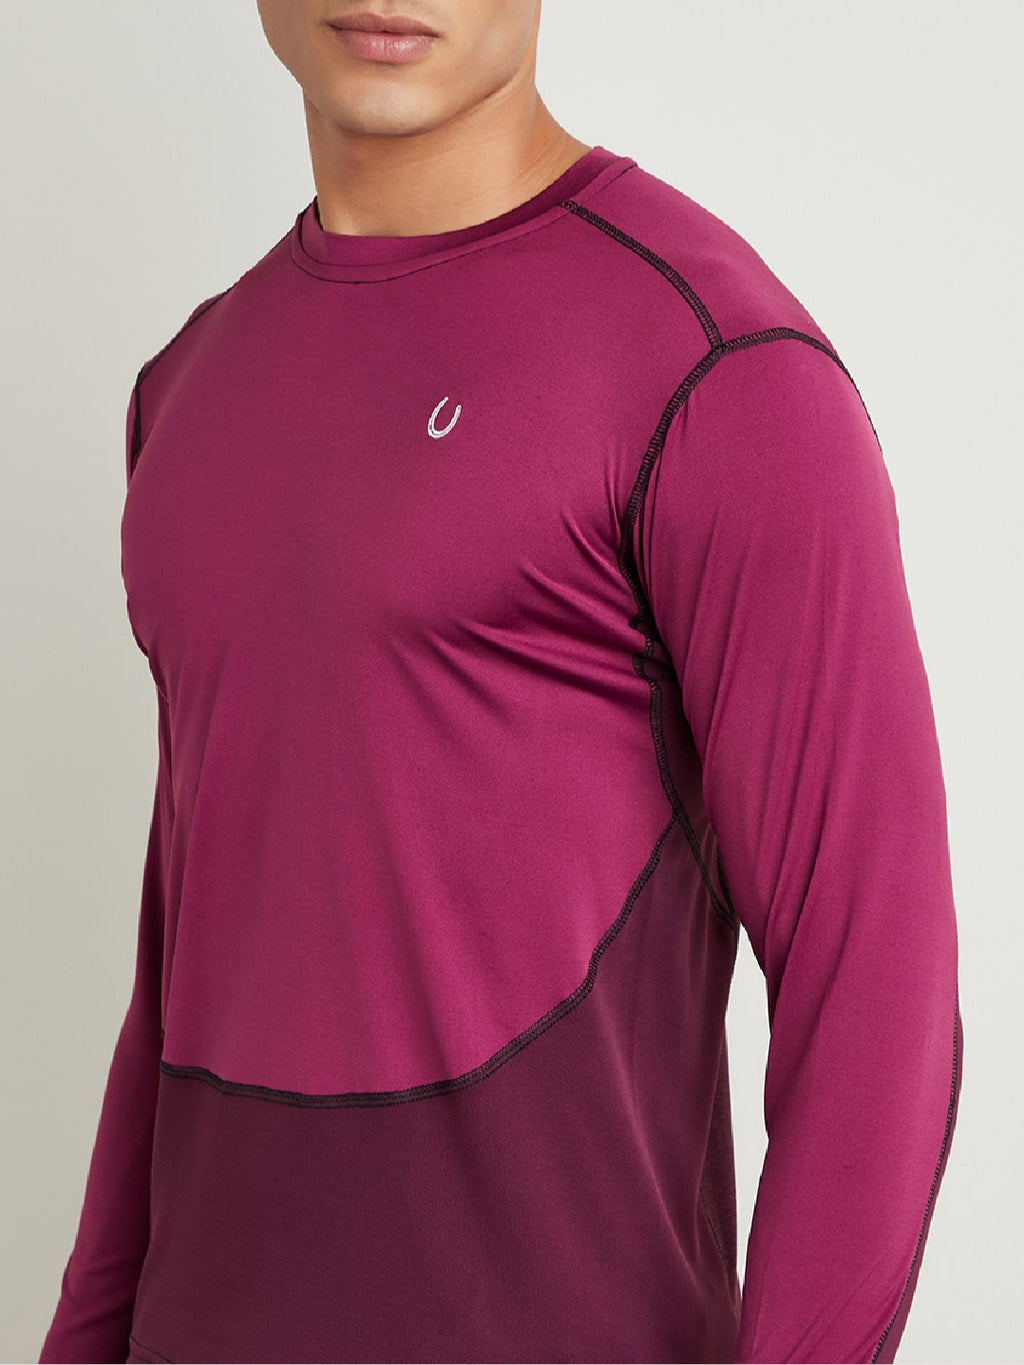 Fitkin Men Burgundy Colourblocked Round Neck T-shirt